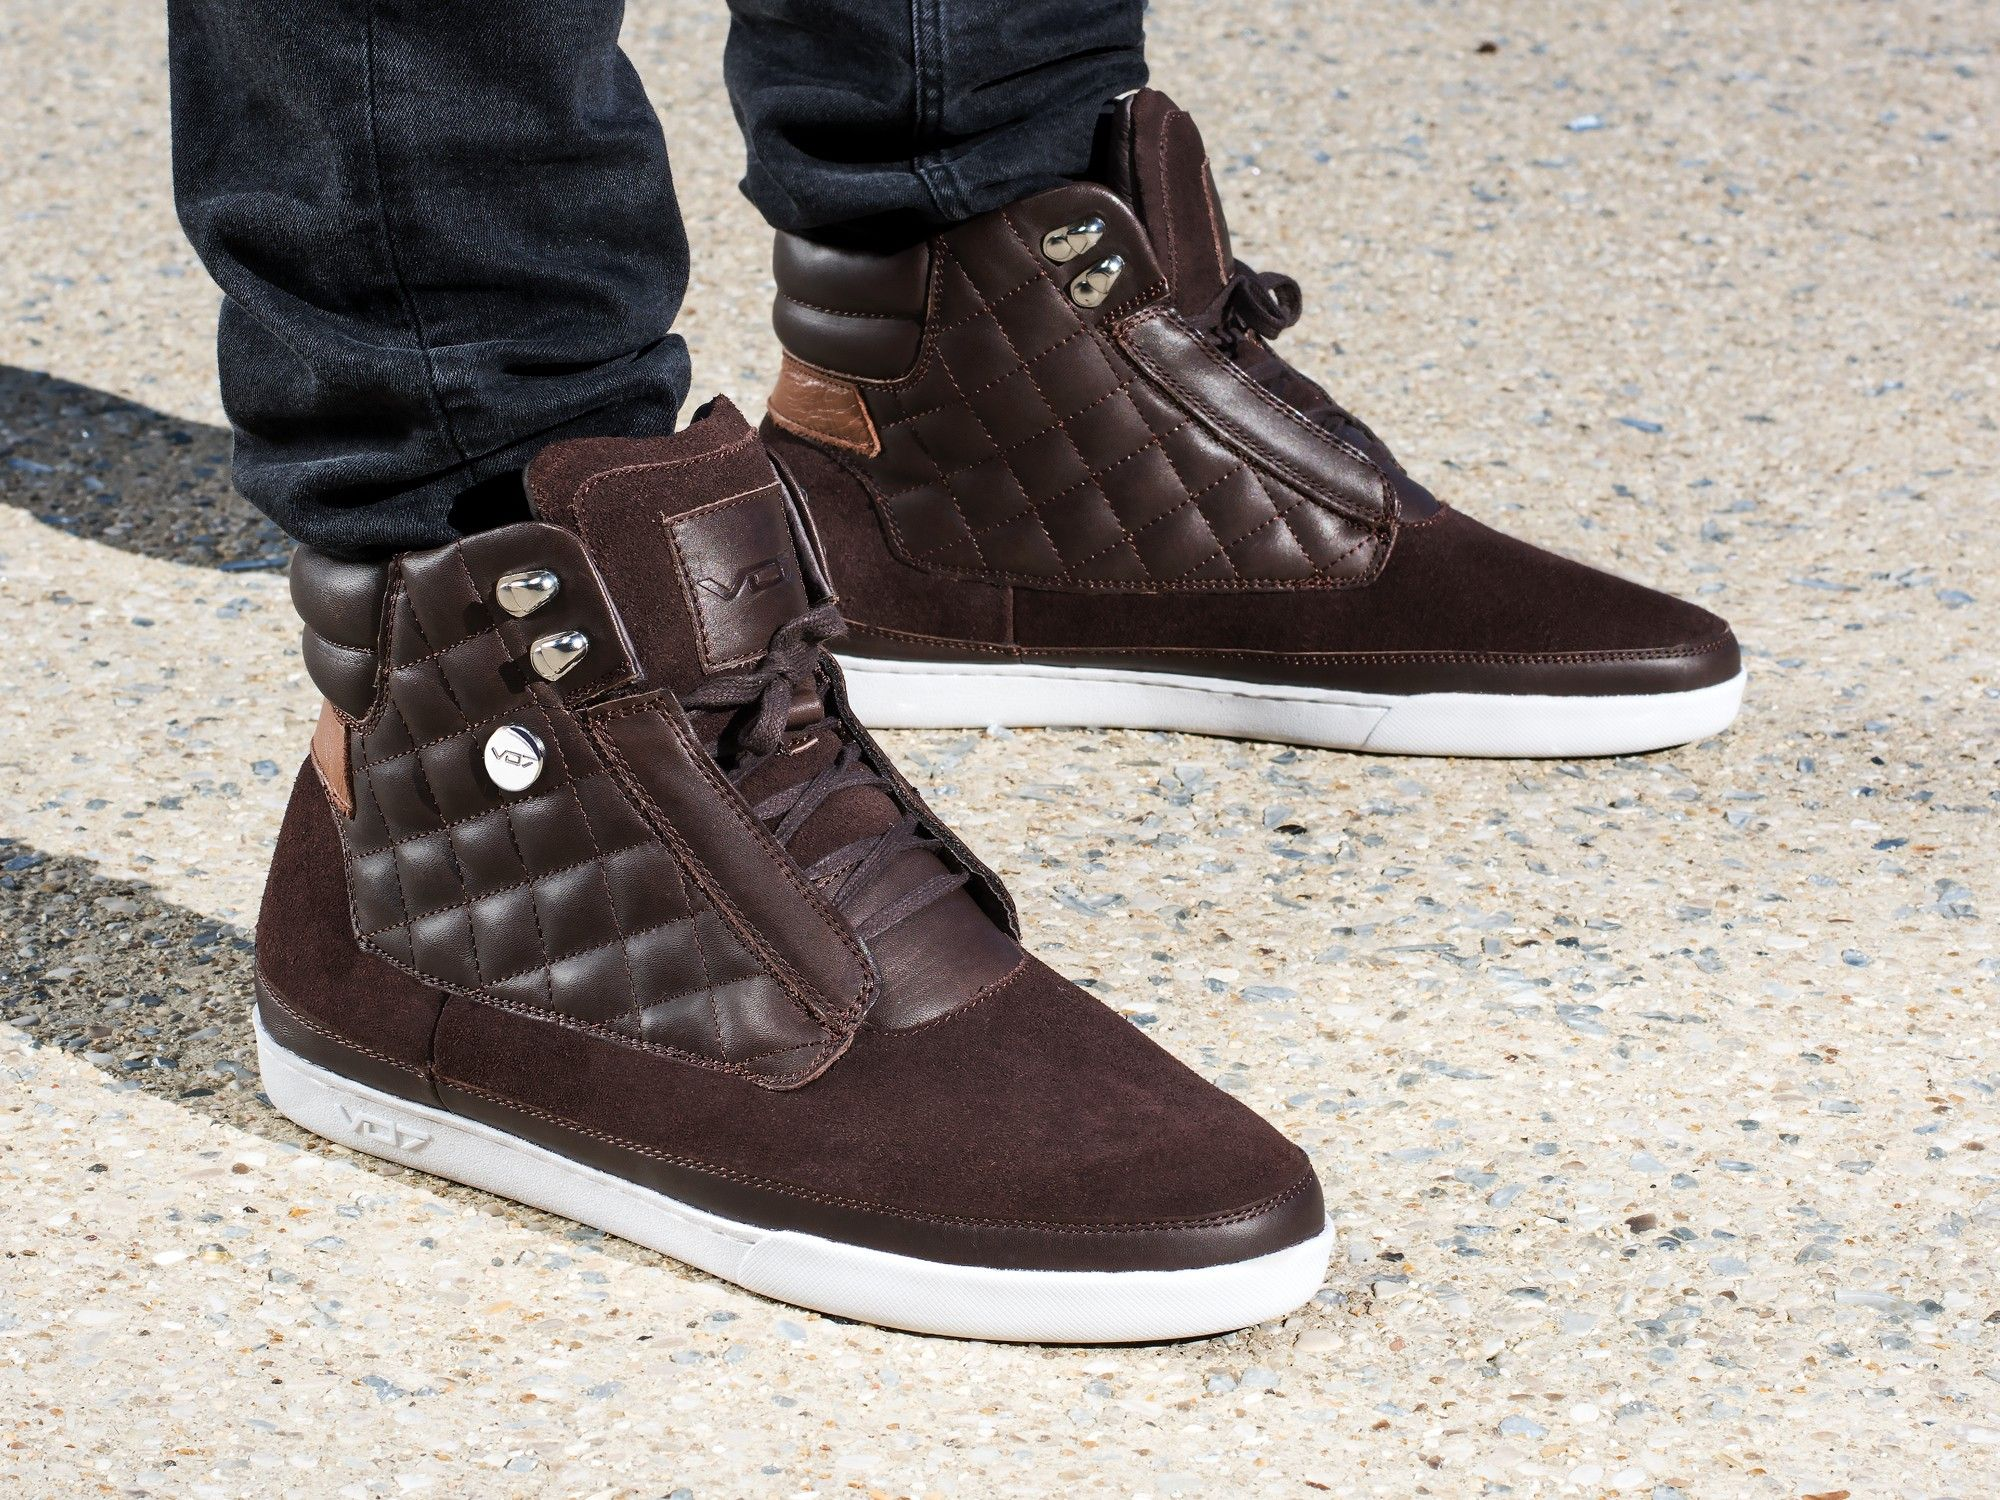 VO7 Falcon Leather Brown | Sneakers fashion, Leather, Top ...